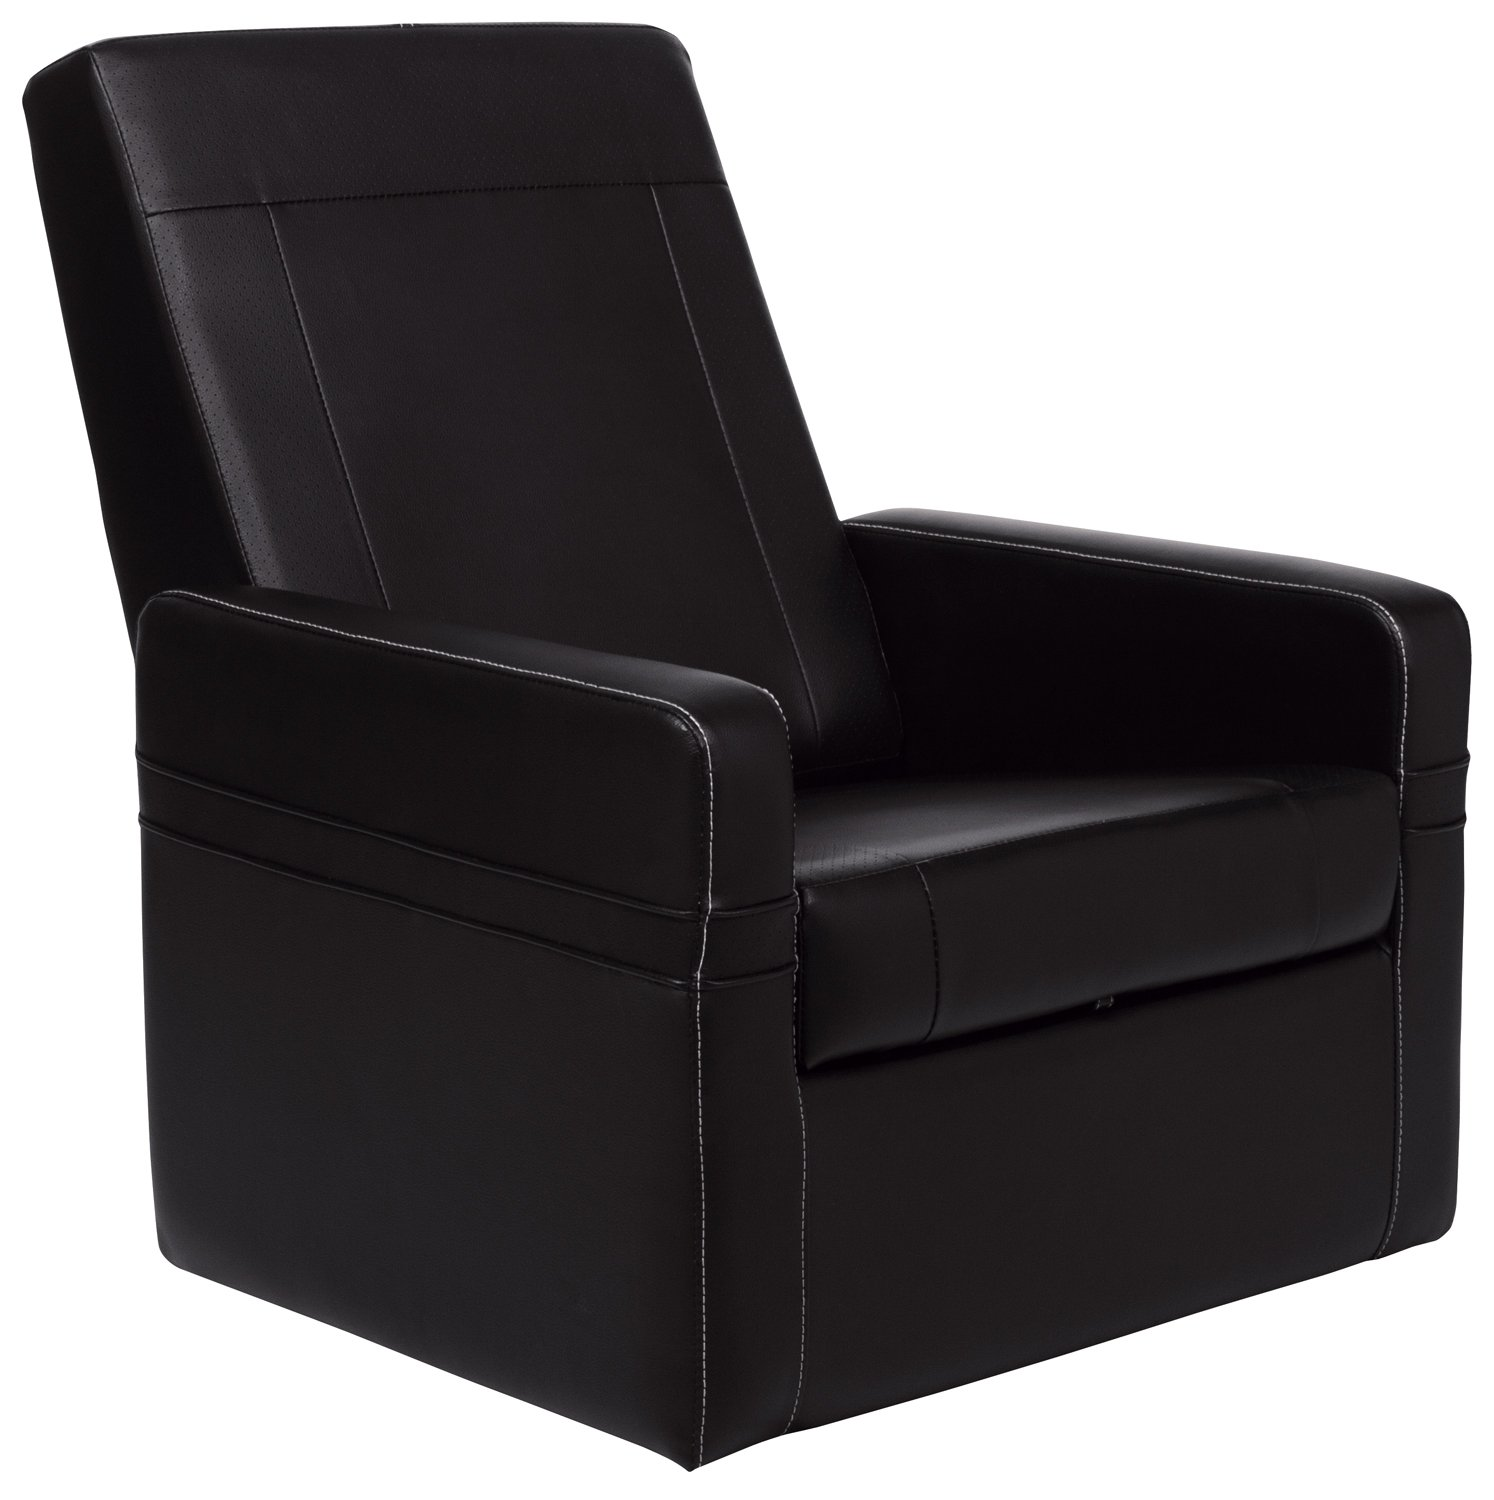 Entertainment Ottoman/Gaming Chair, PureSoft Faux Leather, Black, CR-43668 - Entertainment Ottoman/Gaming Chair, PureSoft Faux Leather, Black